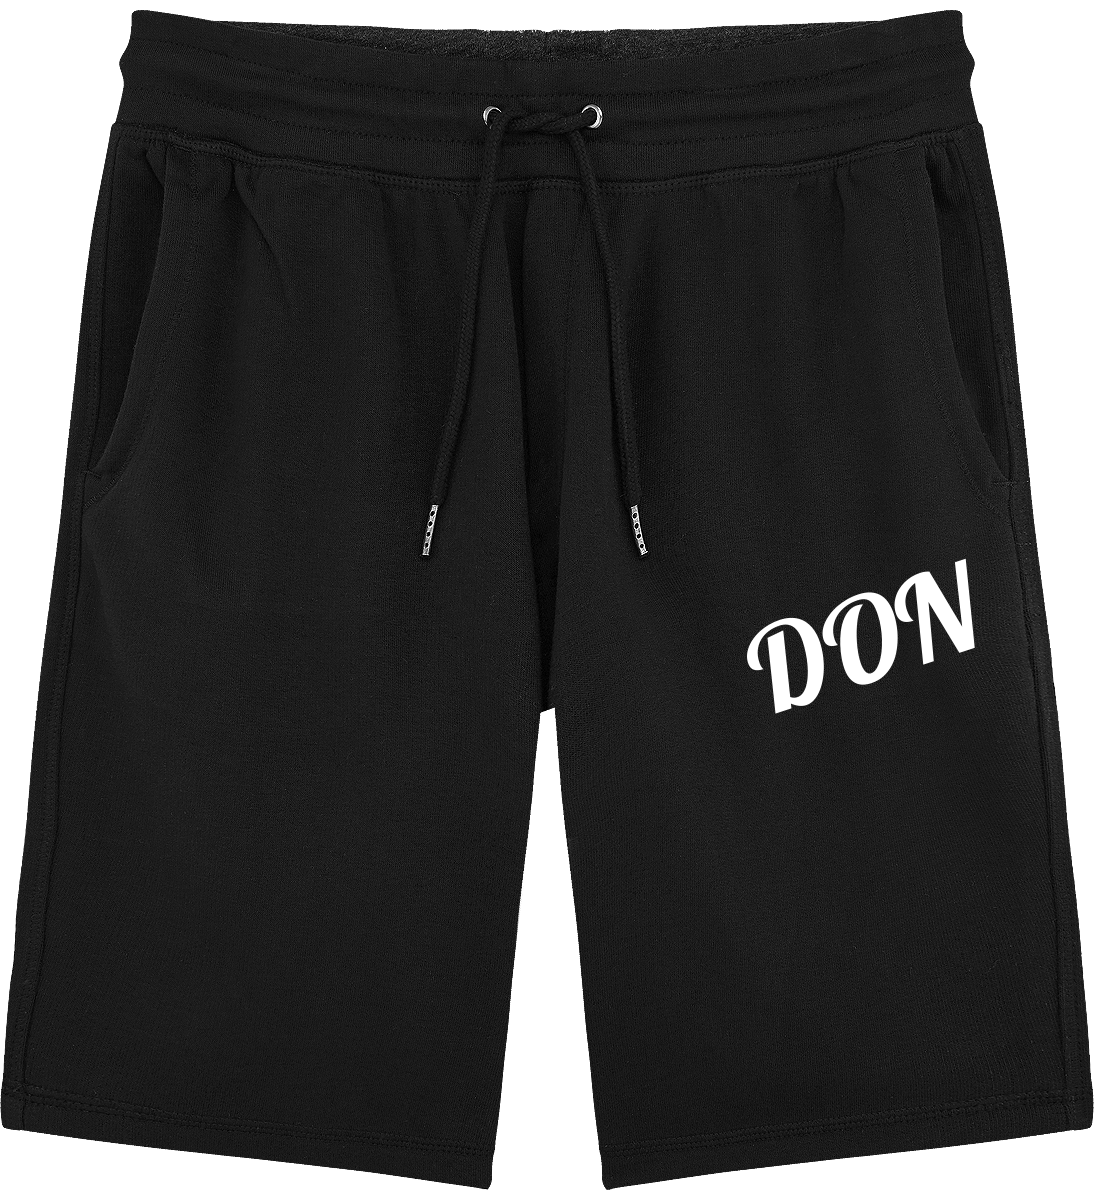 Official Don Mens Jogging Shorts - Black / S - Homme>Vêtements De Sport